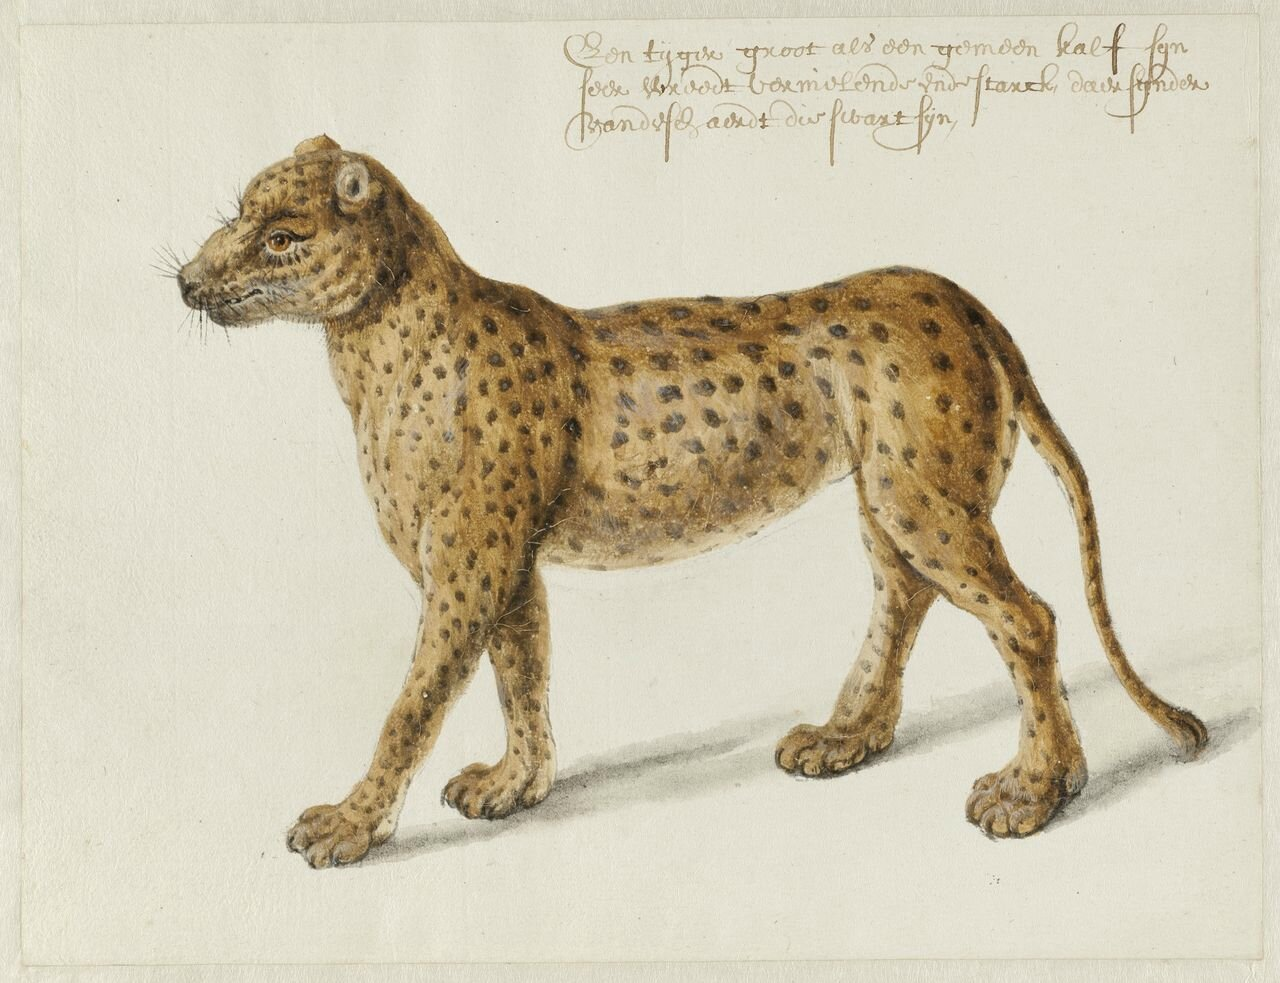 Spectacular discovery of 17th century drawings by Frans Post